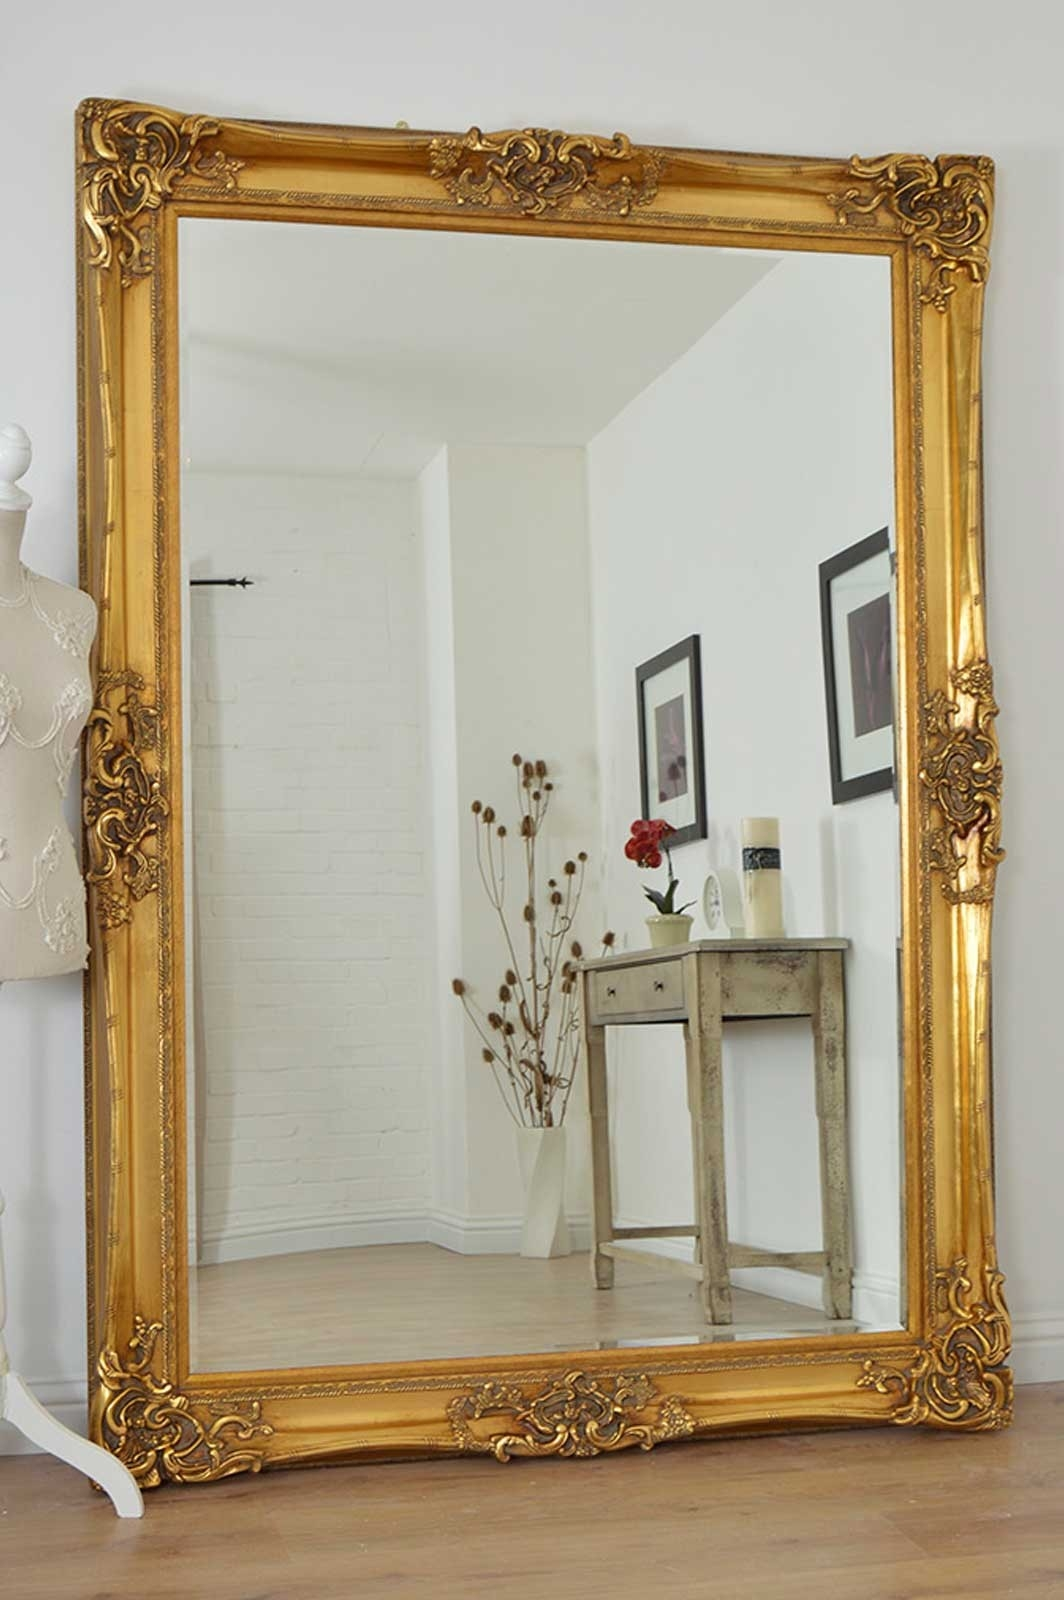 Large Gold Very Ornate Antique Design Wall Mirror 7ft X 5ft 213cm Throughout Where To Buy Vintage Mirrors (Image 10 of 15)